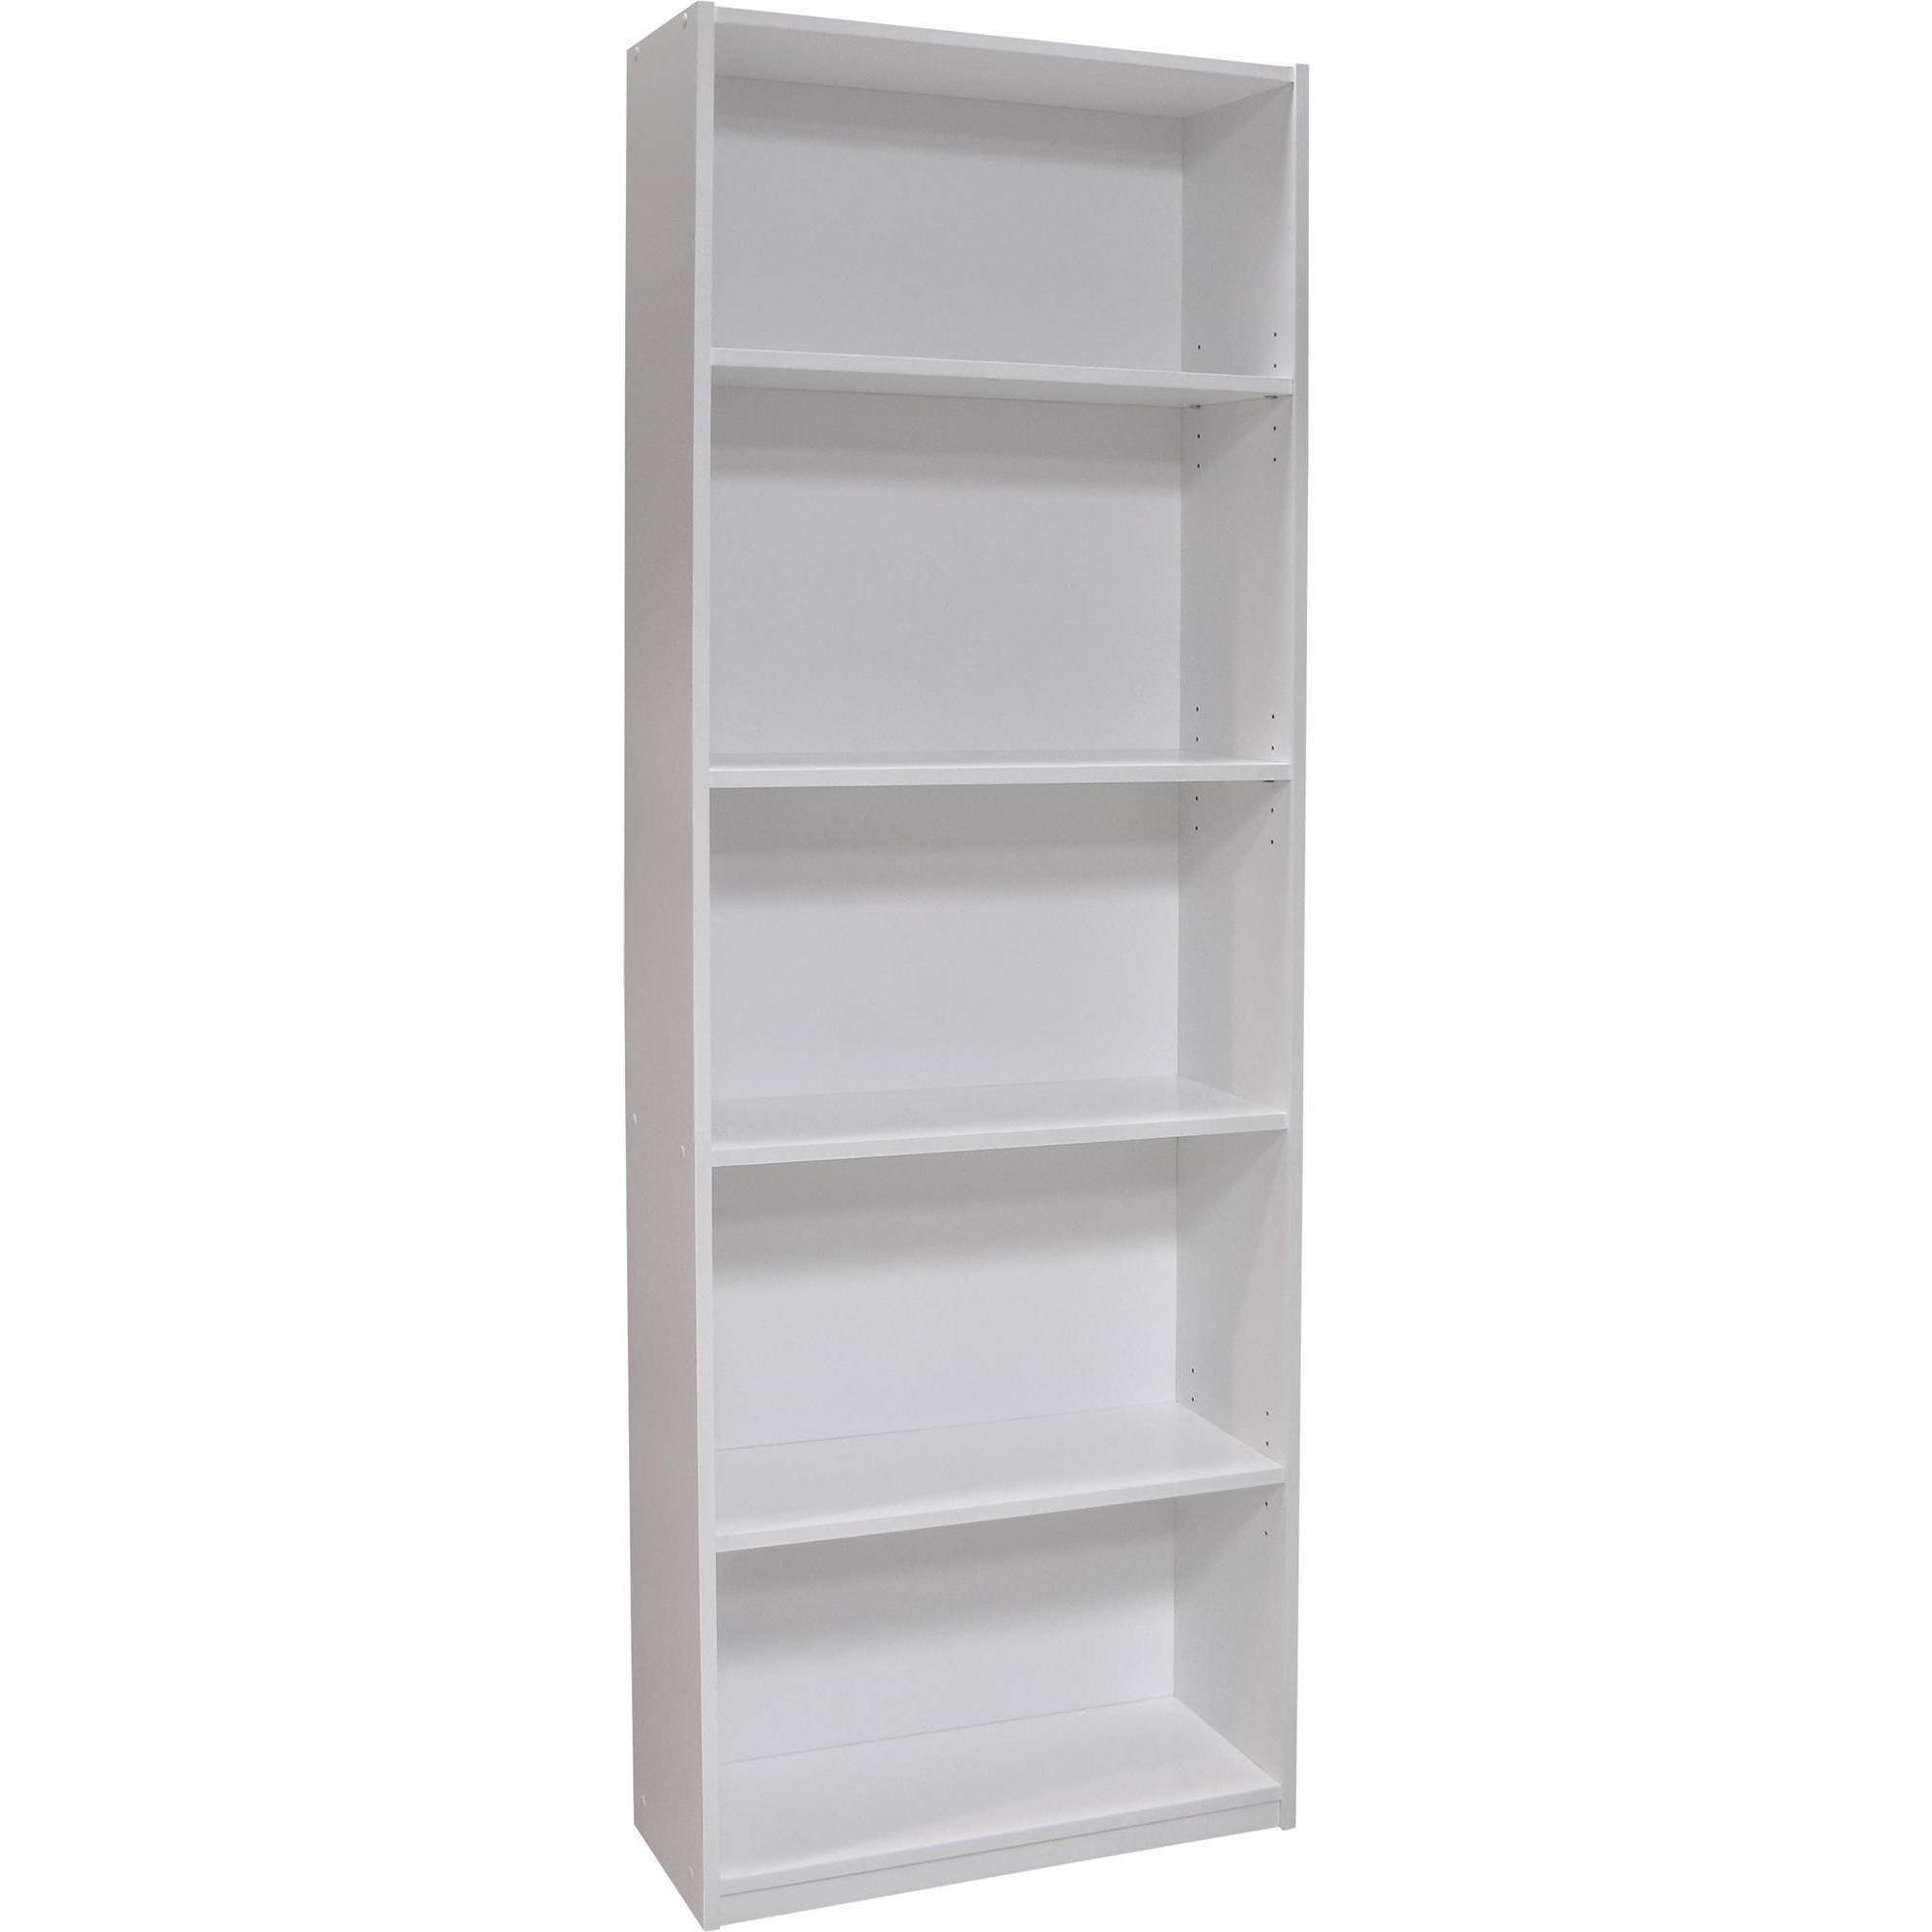 Walmart Shelving | Wall Mounted Shelves Walmart | Plastic Shelving Walmart